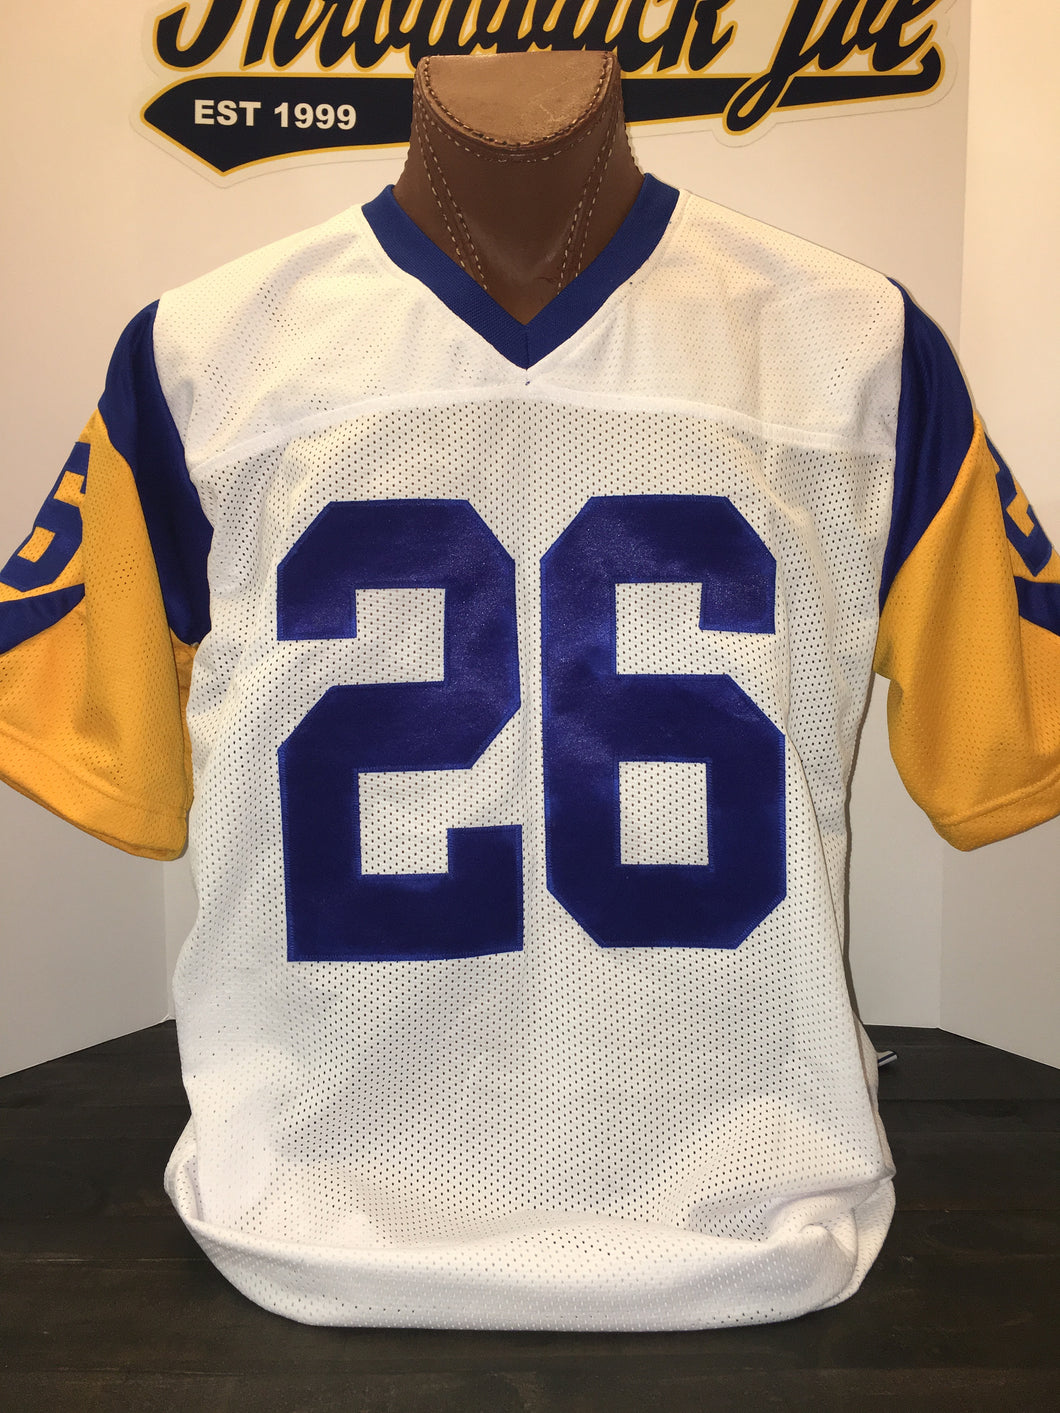 1973-1999  STYLE AWAY JERSEY